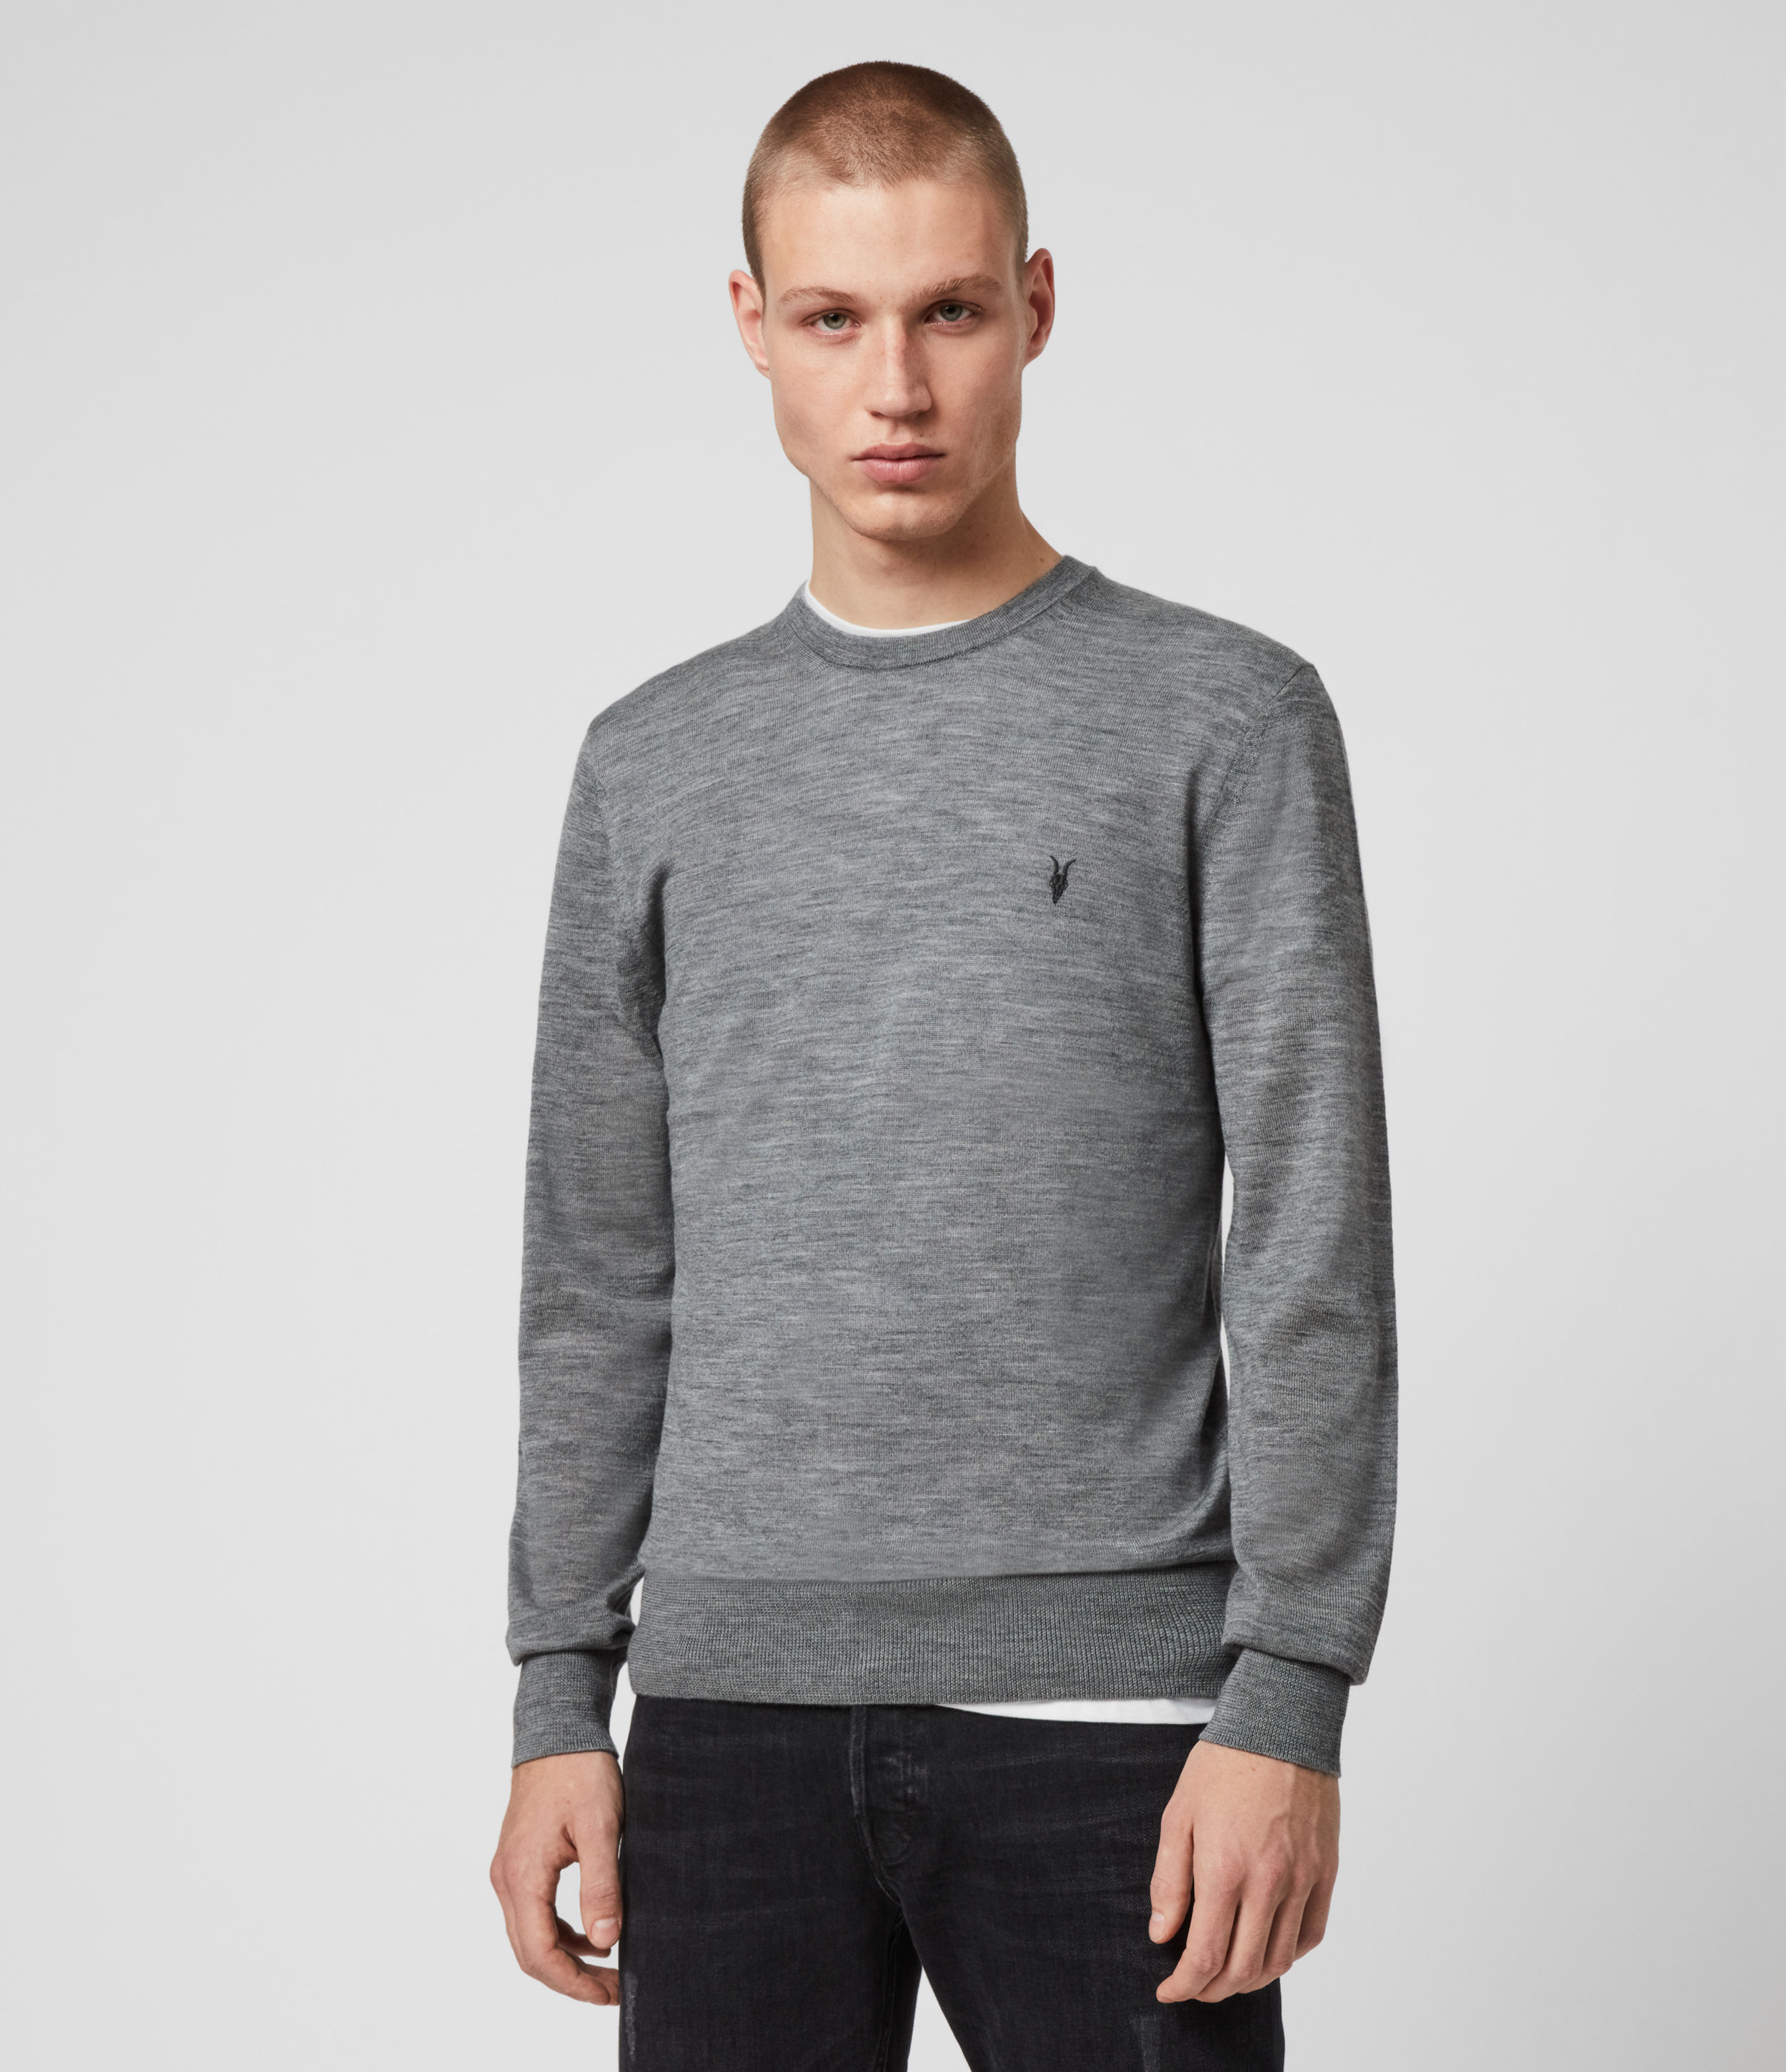 AllSaints Men's Merino Wool Lightweight Mode Crew Jumper, Grey, Size: L